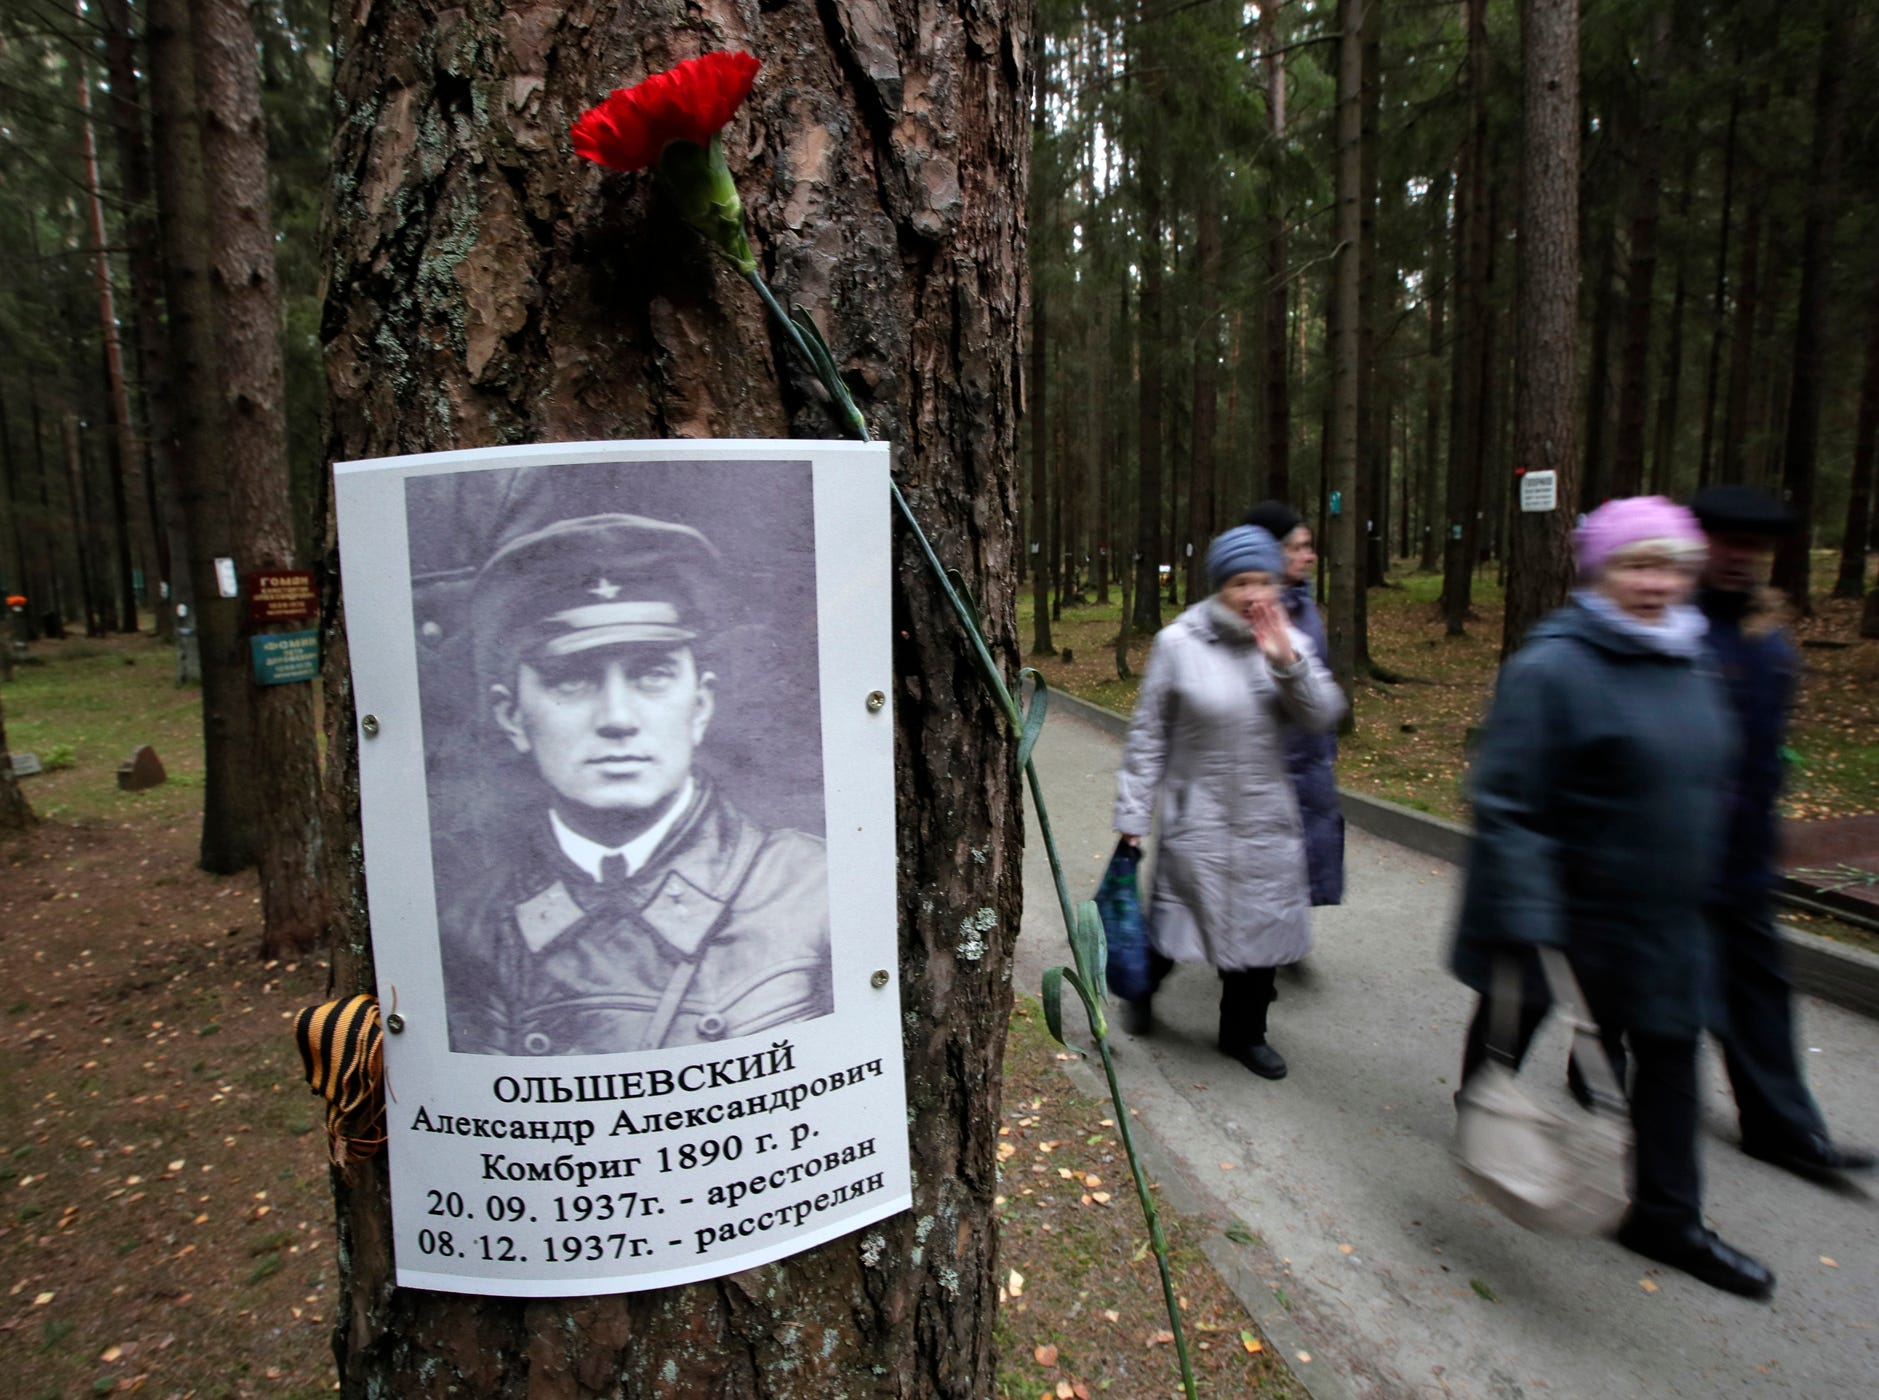 People walk past the portrait of Red Army commander Alexander Olshevsky arrested and shot in 1937 at Levashovo Memorial cemetery of victims of Soviet repressions during the Great Terror, the Soviet dictator Joseph Stalin's purges, on the outskirts of St.Petersburg, Russia, Tuesday, Oct. 30, 2018.  About 45,000 of the executed were buried in the Levashovo cemetery in 1937-1953, and October 30 is the Day of Remembrance for the Victims of Political Repressions in Russia. (AP Photo/Dmitri Lovetsky)